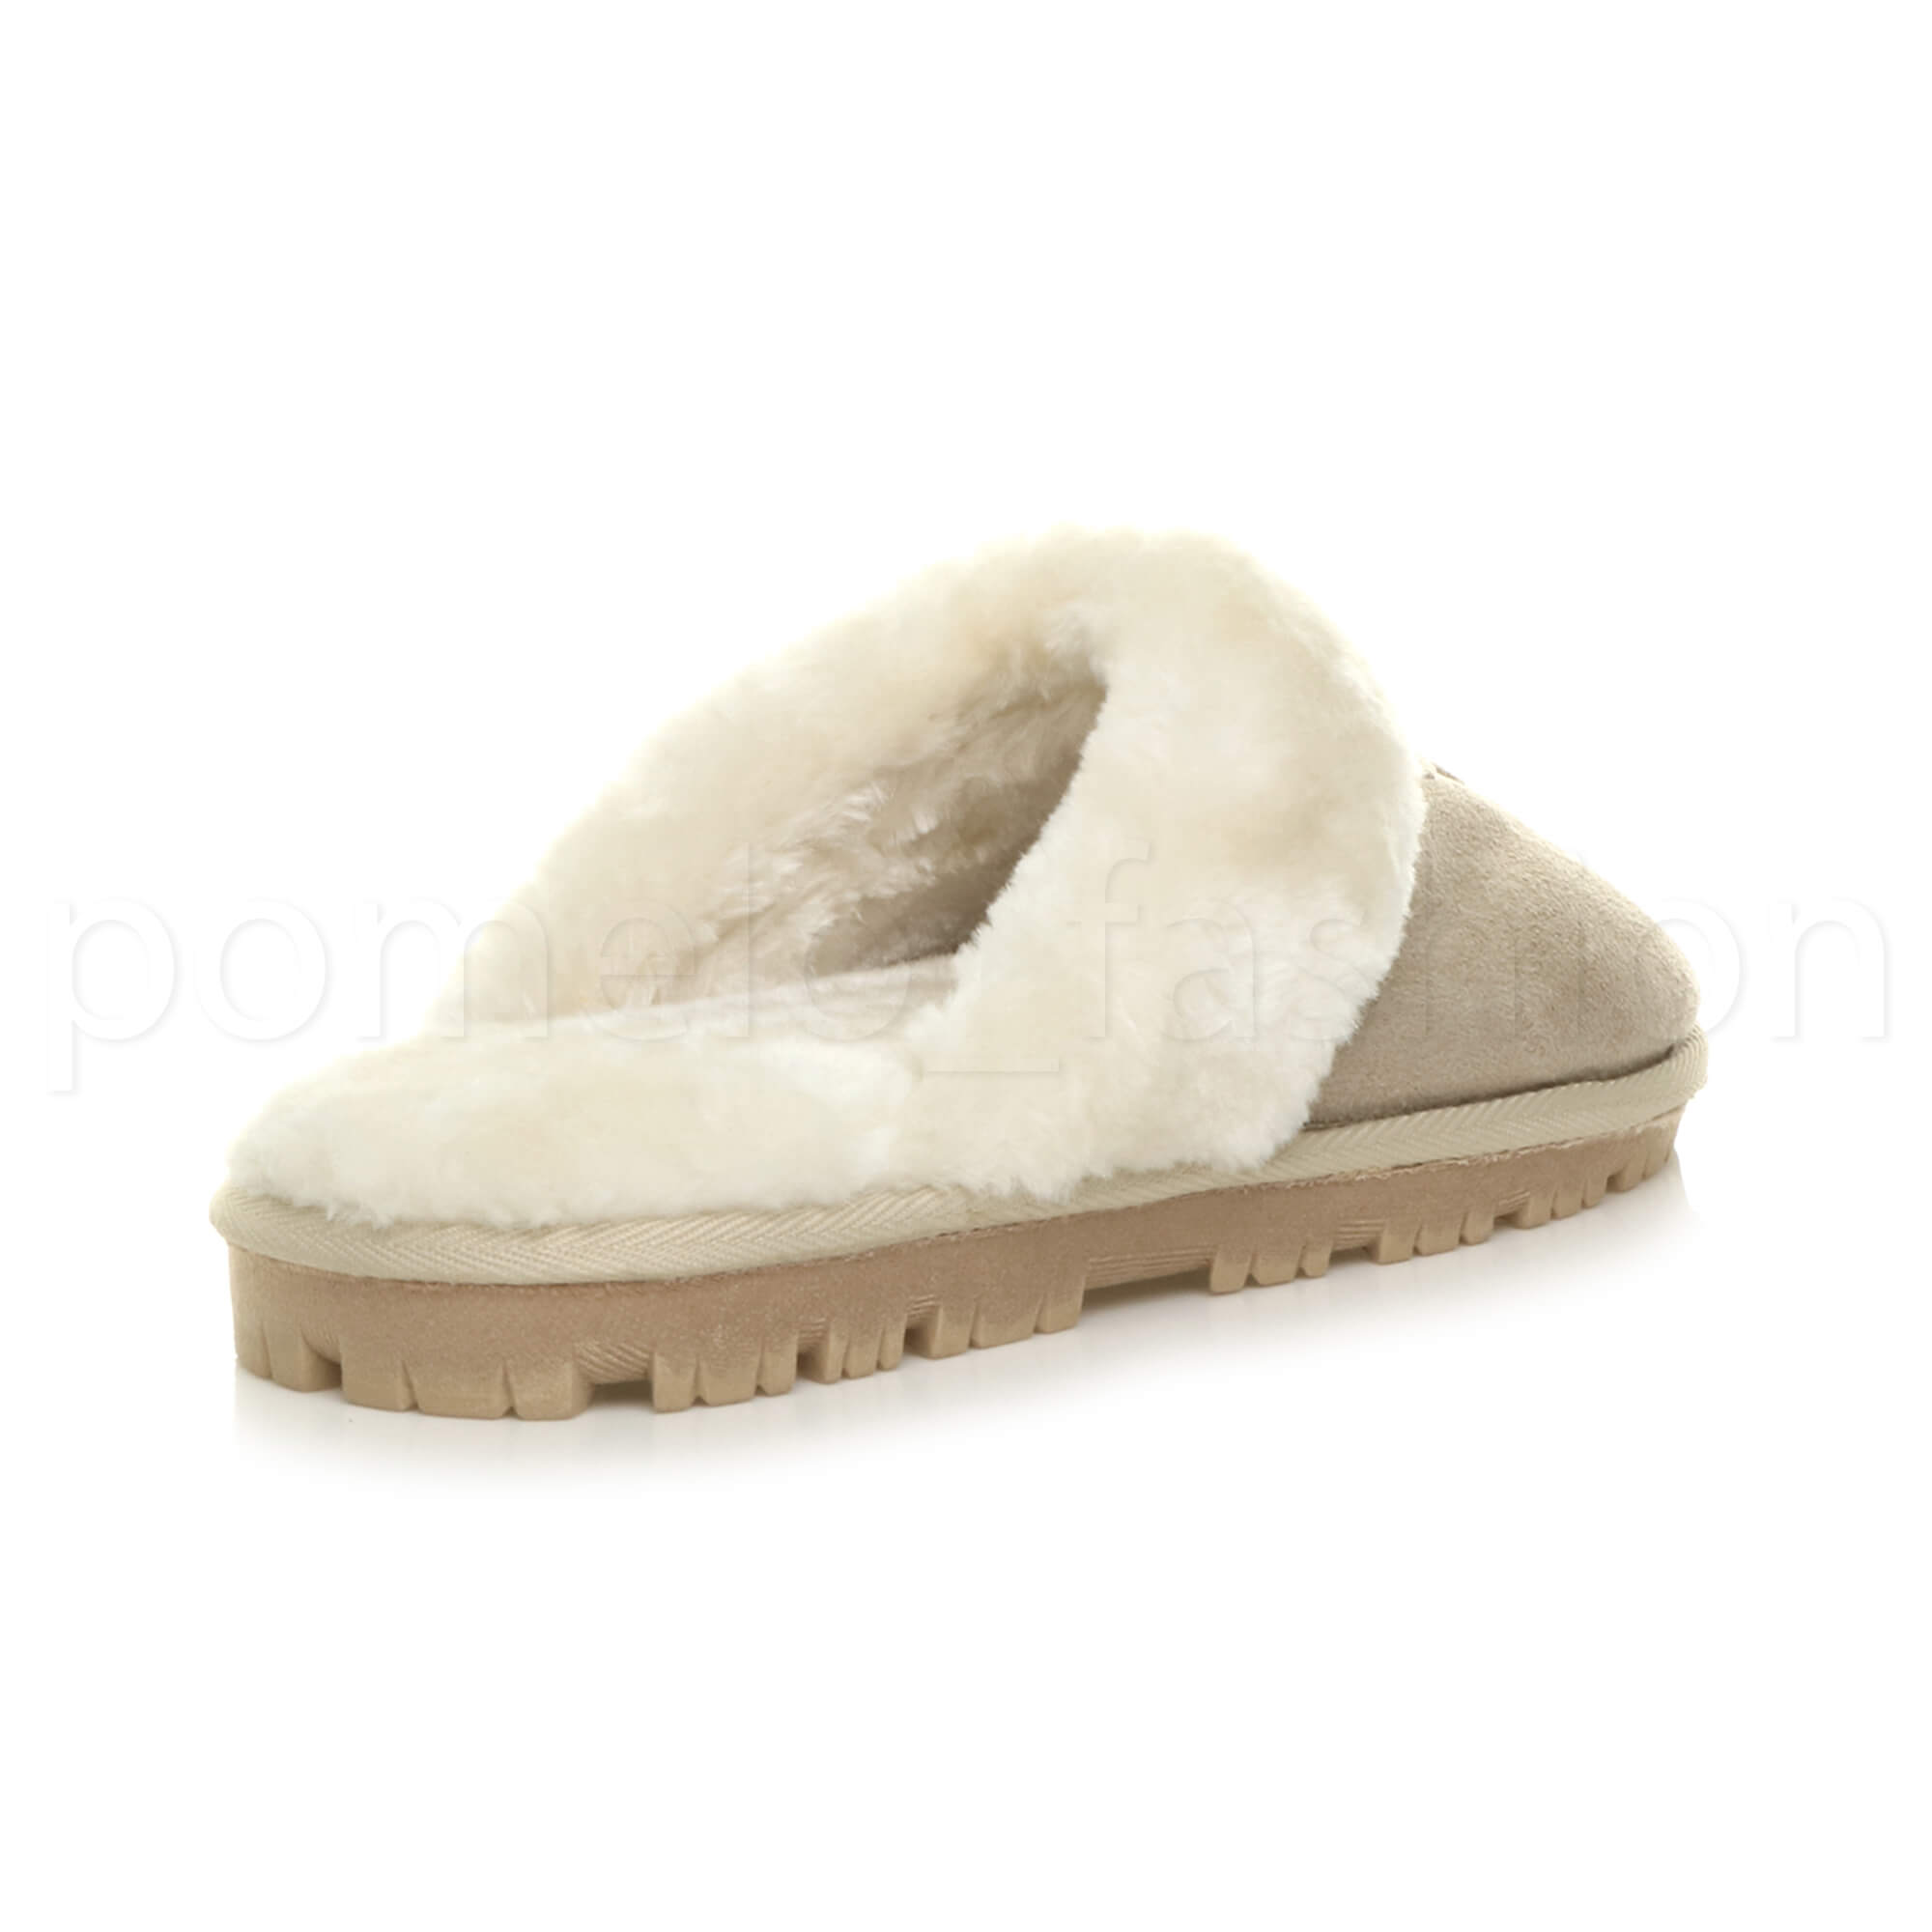 WOMENS-LADIES-FLAT-FUR-LINED-COMFORTABLE-WINTER-MULES-SLIPPERS-HOUSE-SHOES-SIZE thumbnail 5